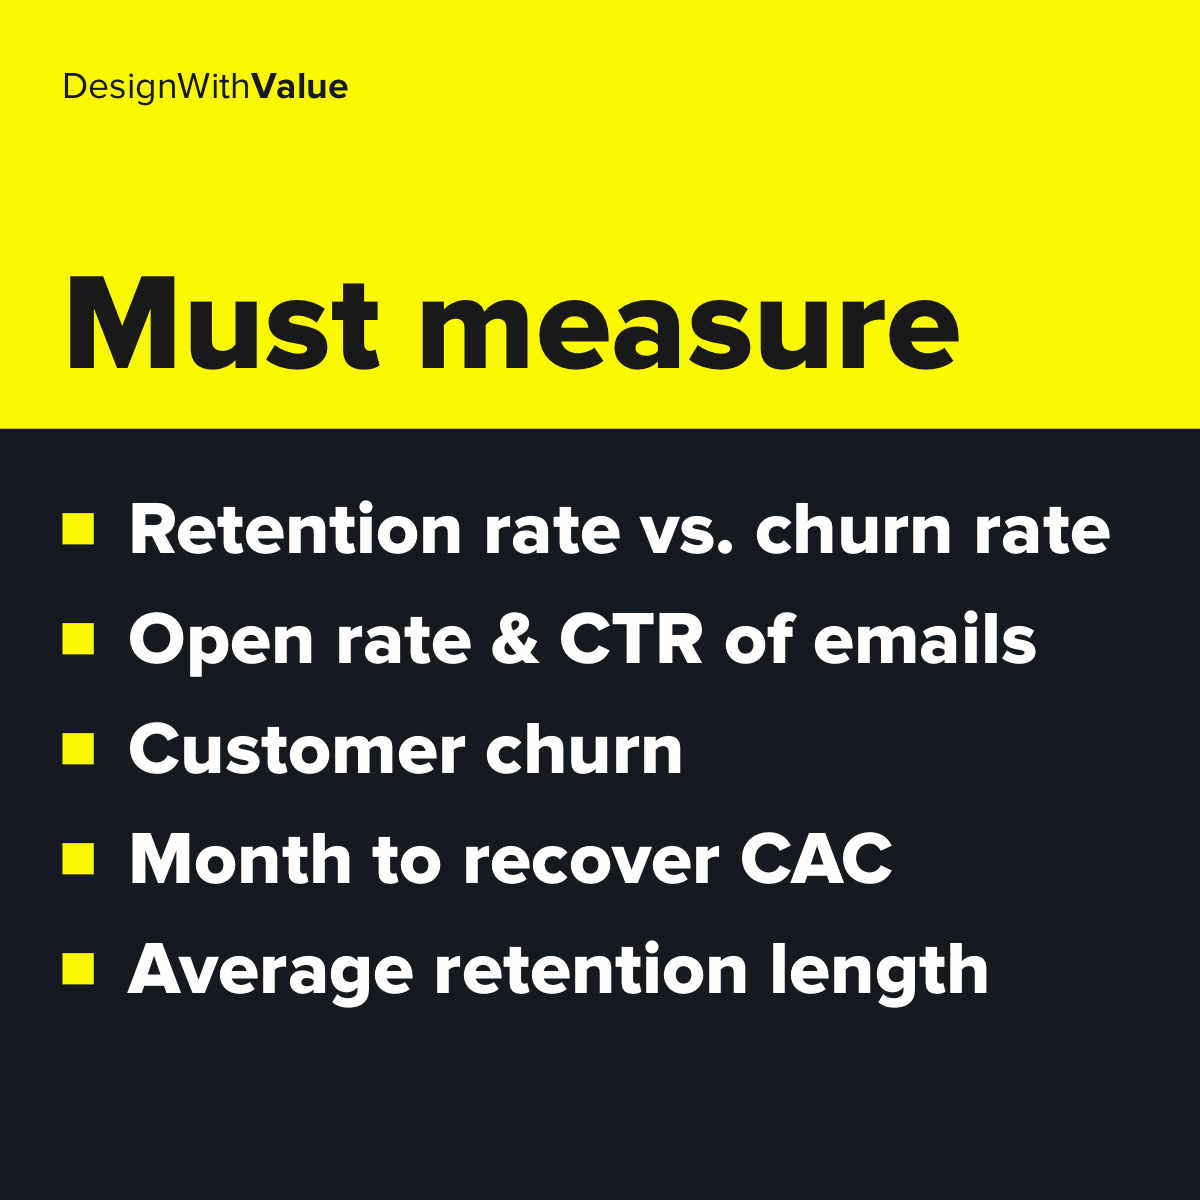 List of metrics: Retention rate vs churn rate, open rate and click through rate of emails, customer churn, month to recover cac, average retention length.